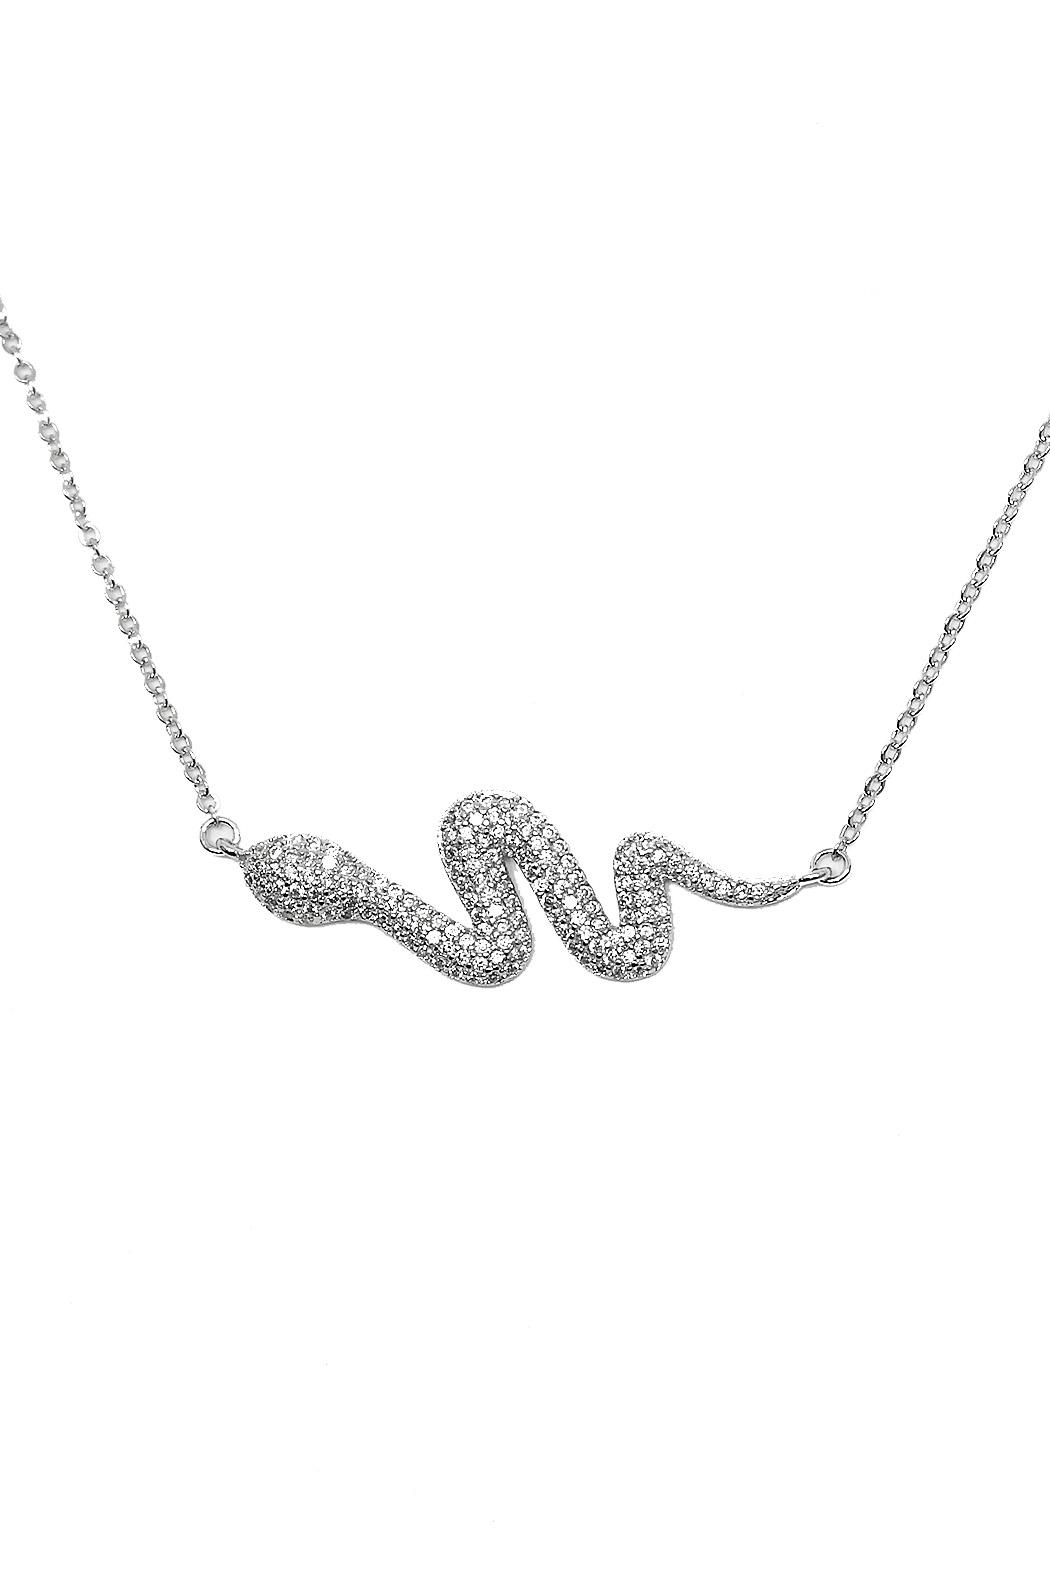 TINK TINK Glamorous Silver Snake Necklace - Main Image